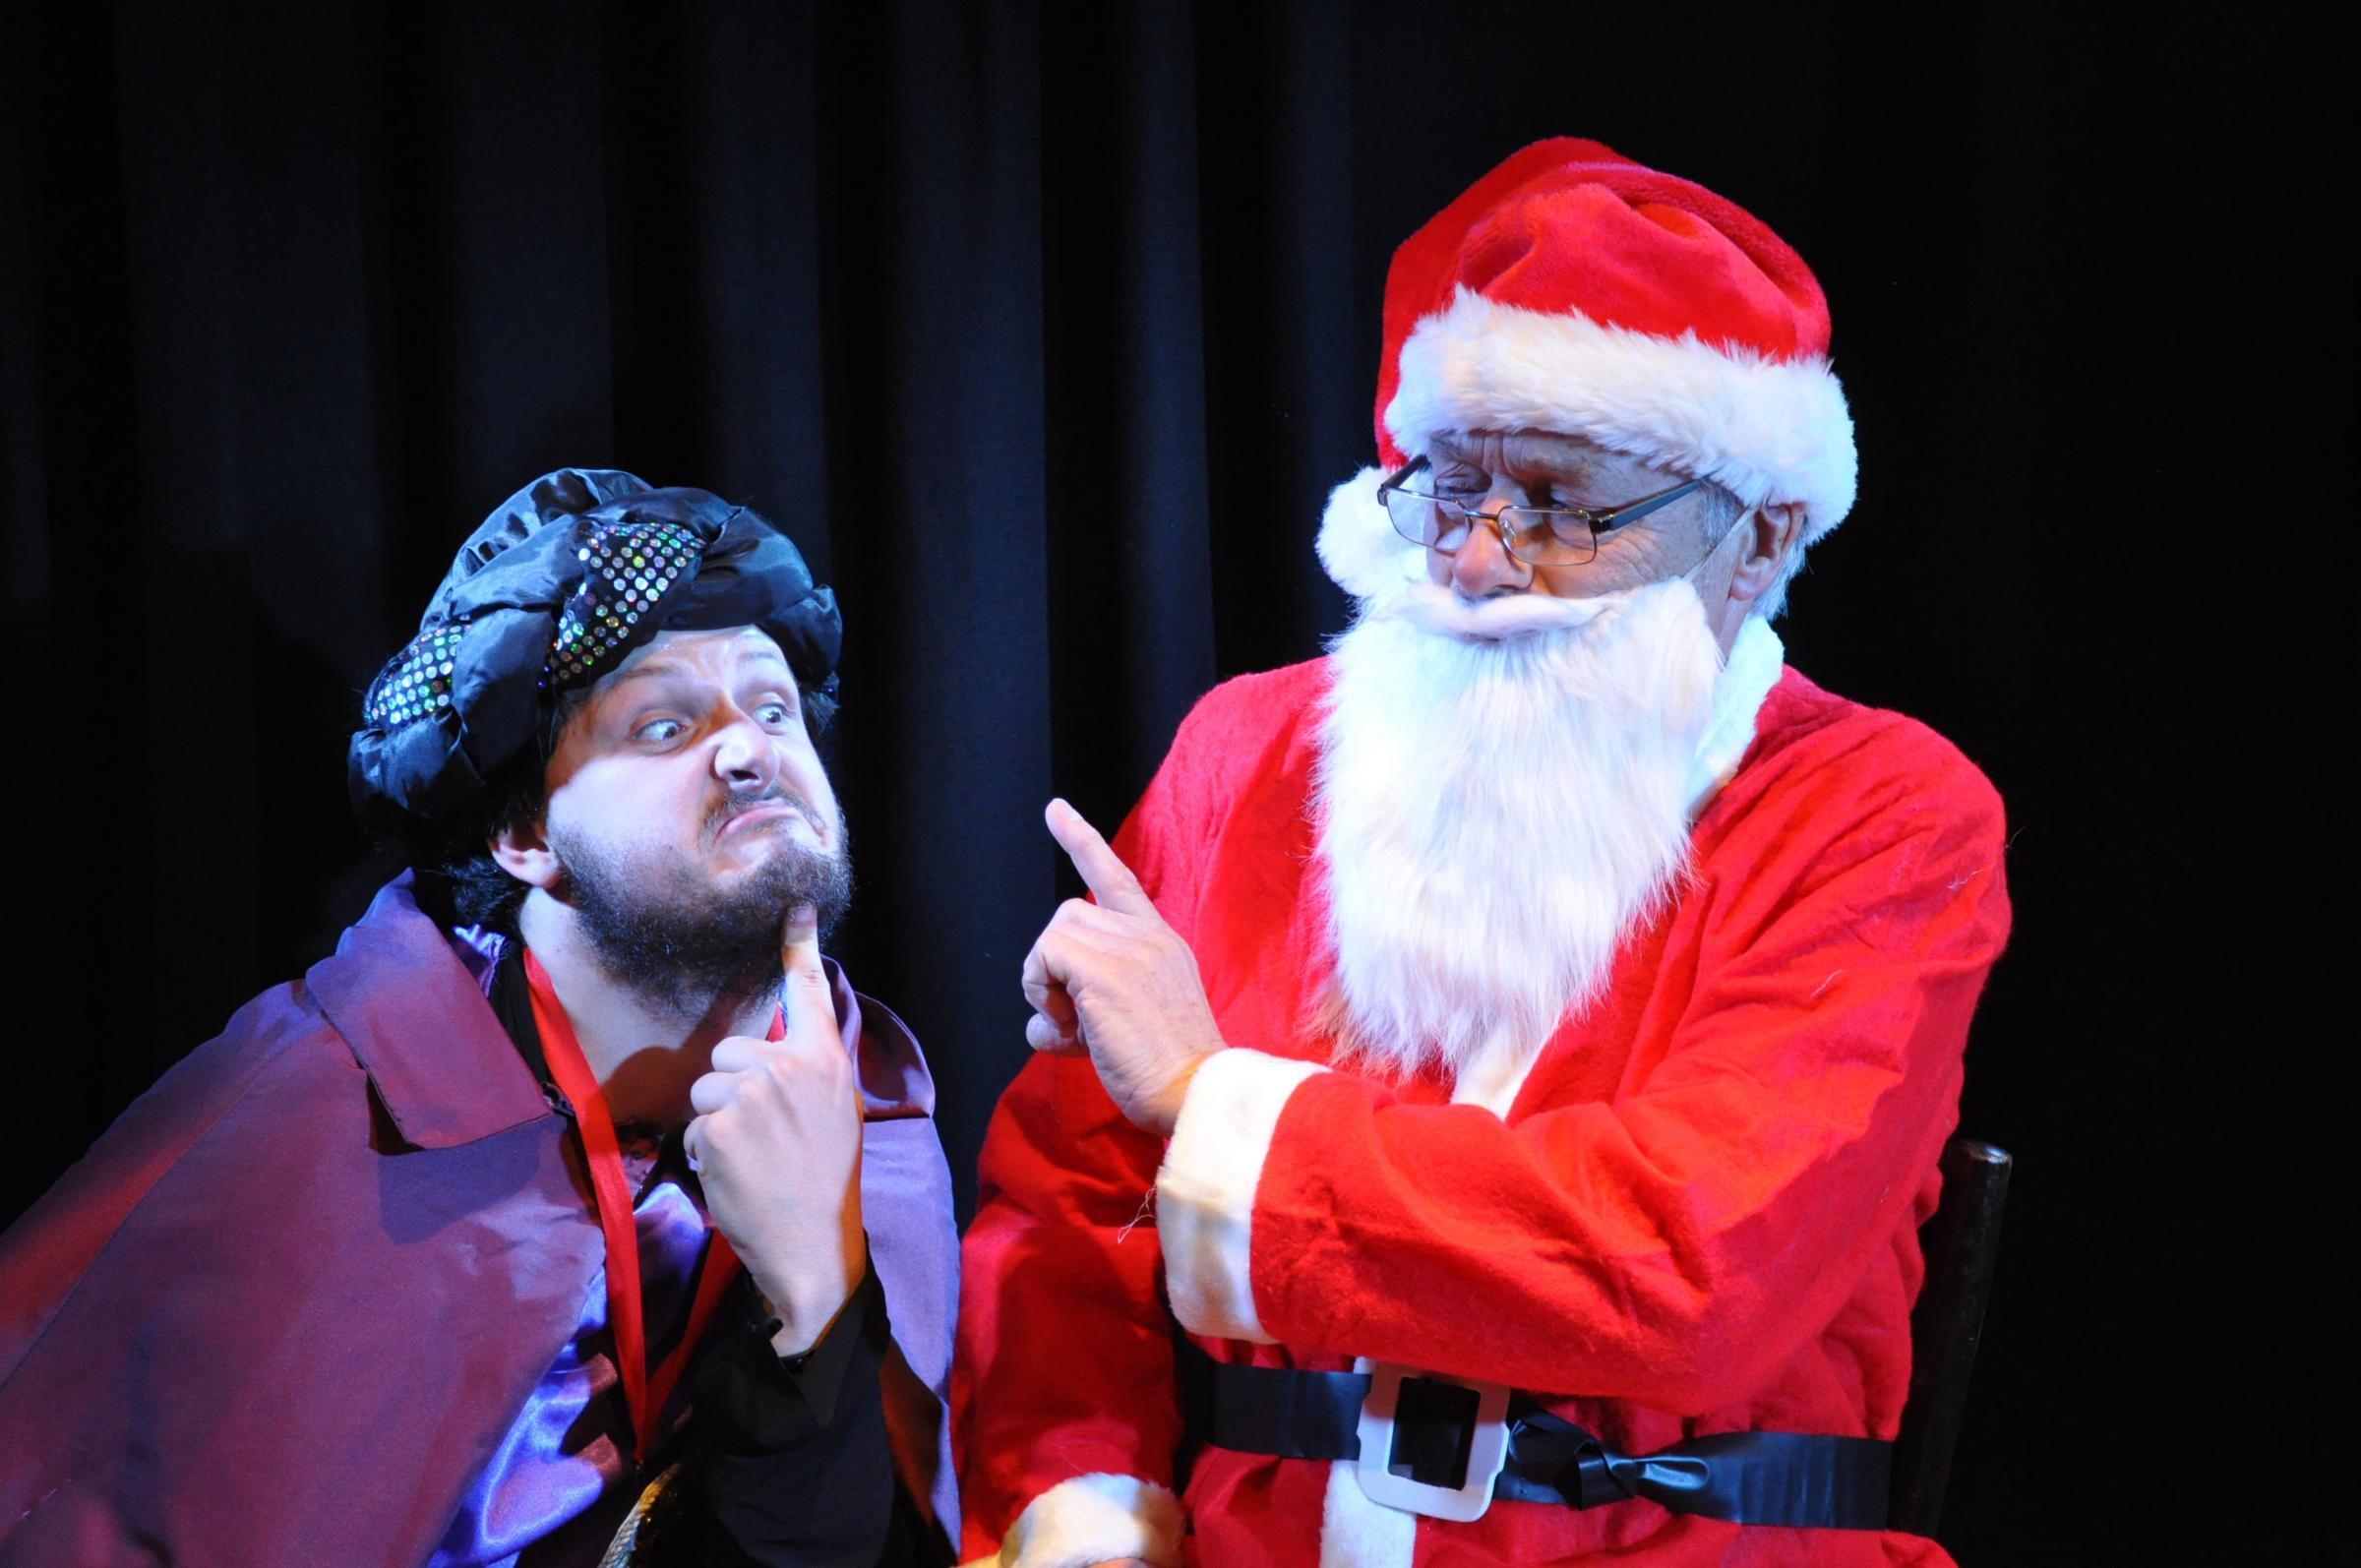 Monty Kimball-Evans plays Vileun the Vile and Jon Crowley is Santa in Abingdon Drama Club's forthcoming pantomime Santa in Space